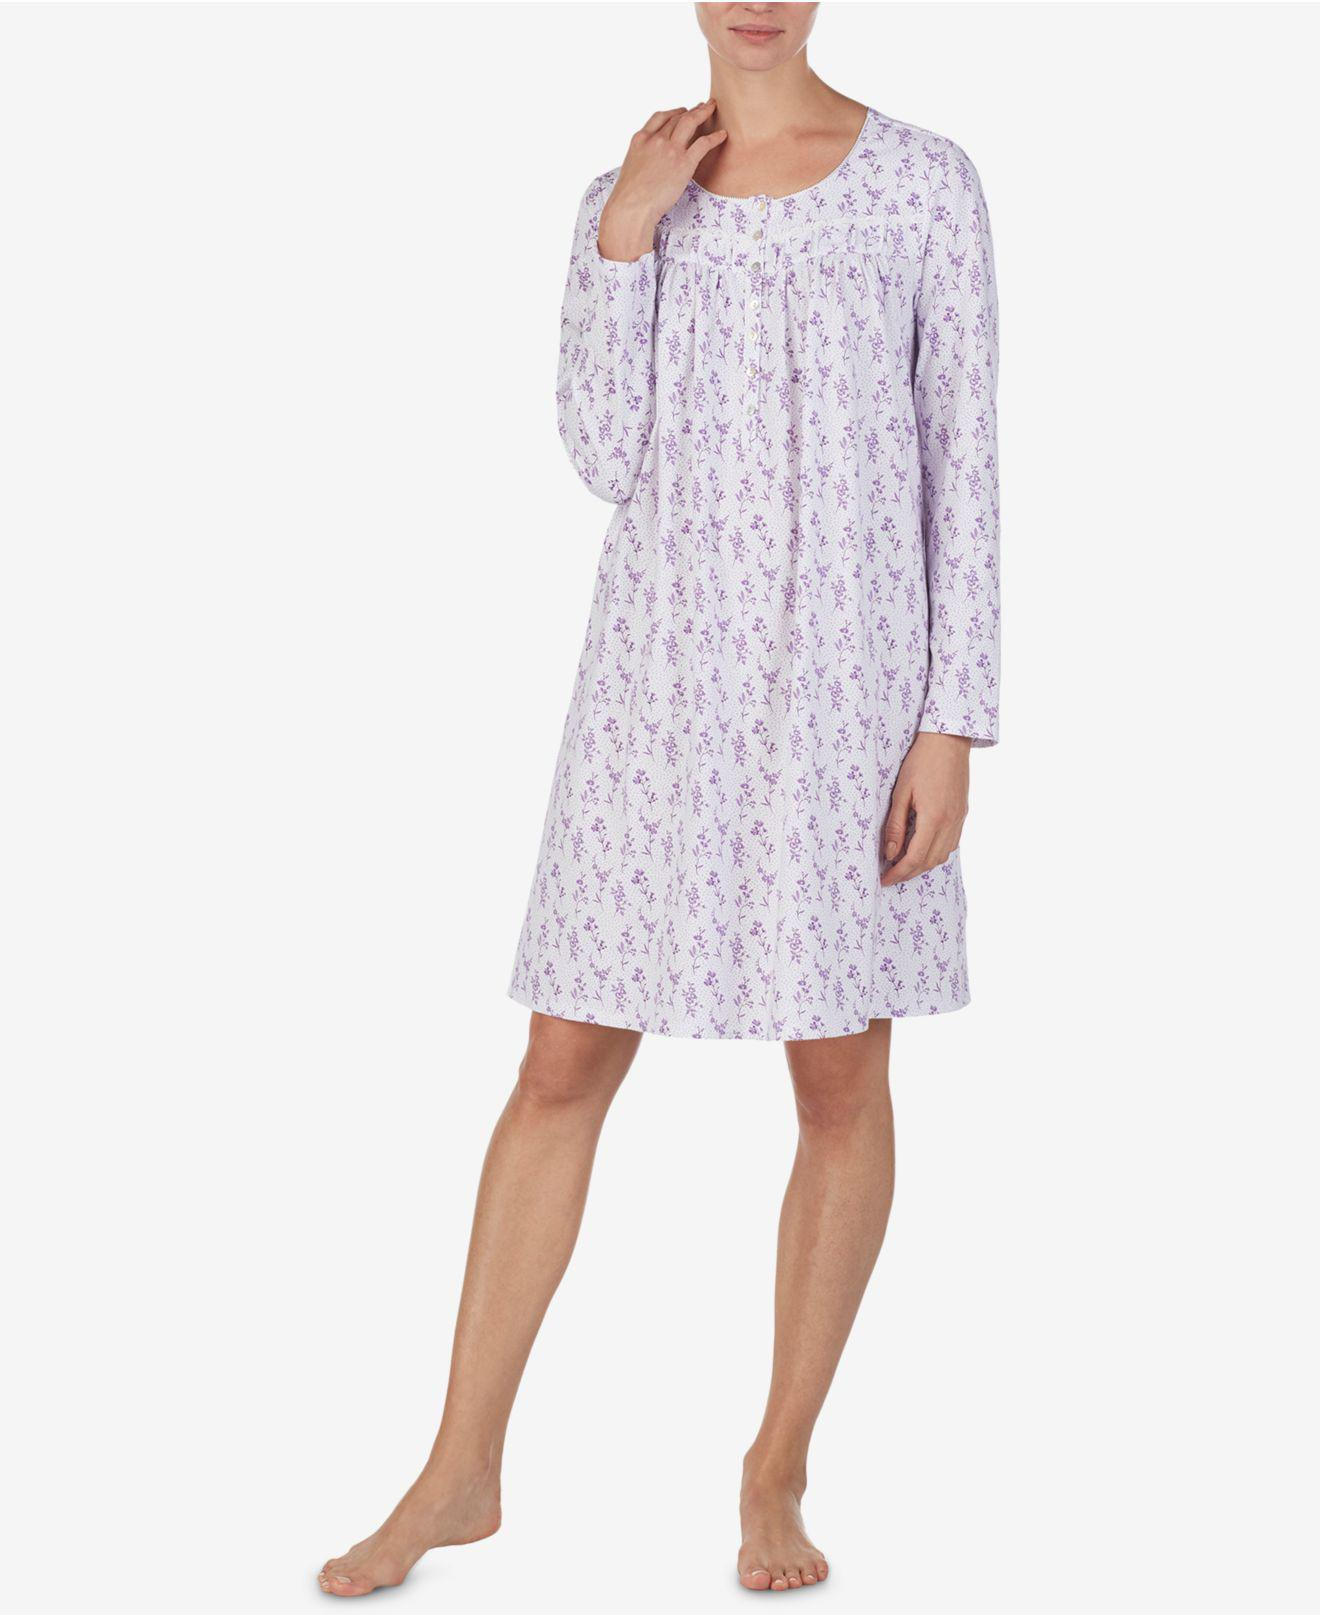 ca0ff9281b Eileen West. Women s Printed Cotton Knit Nightgown